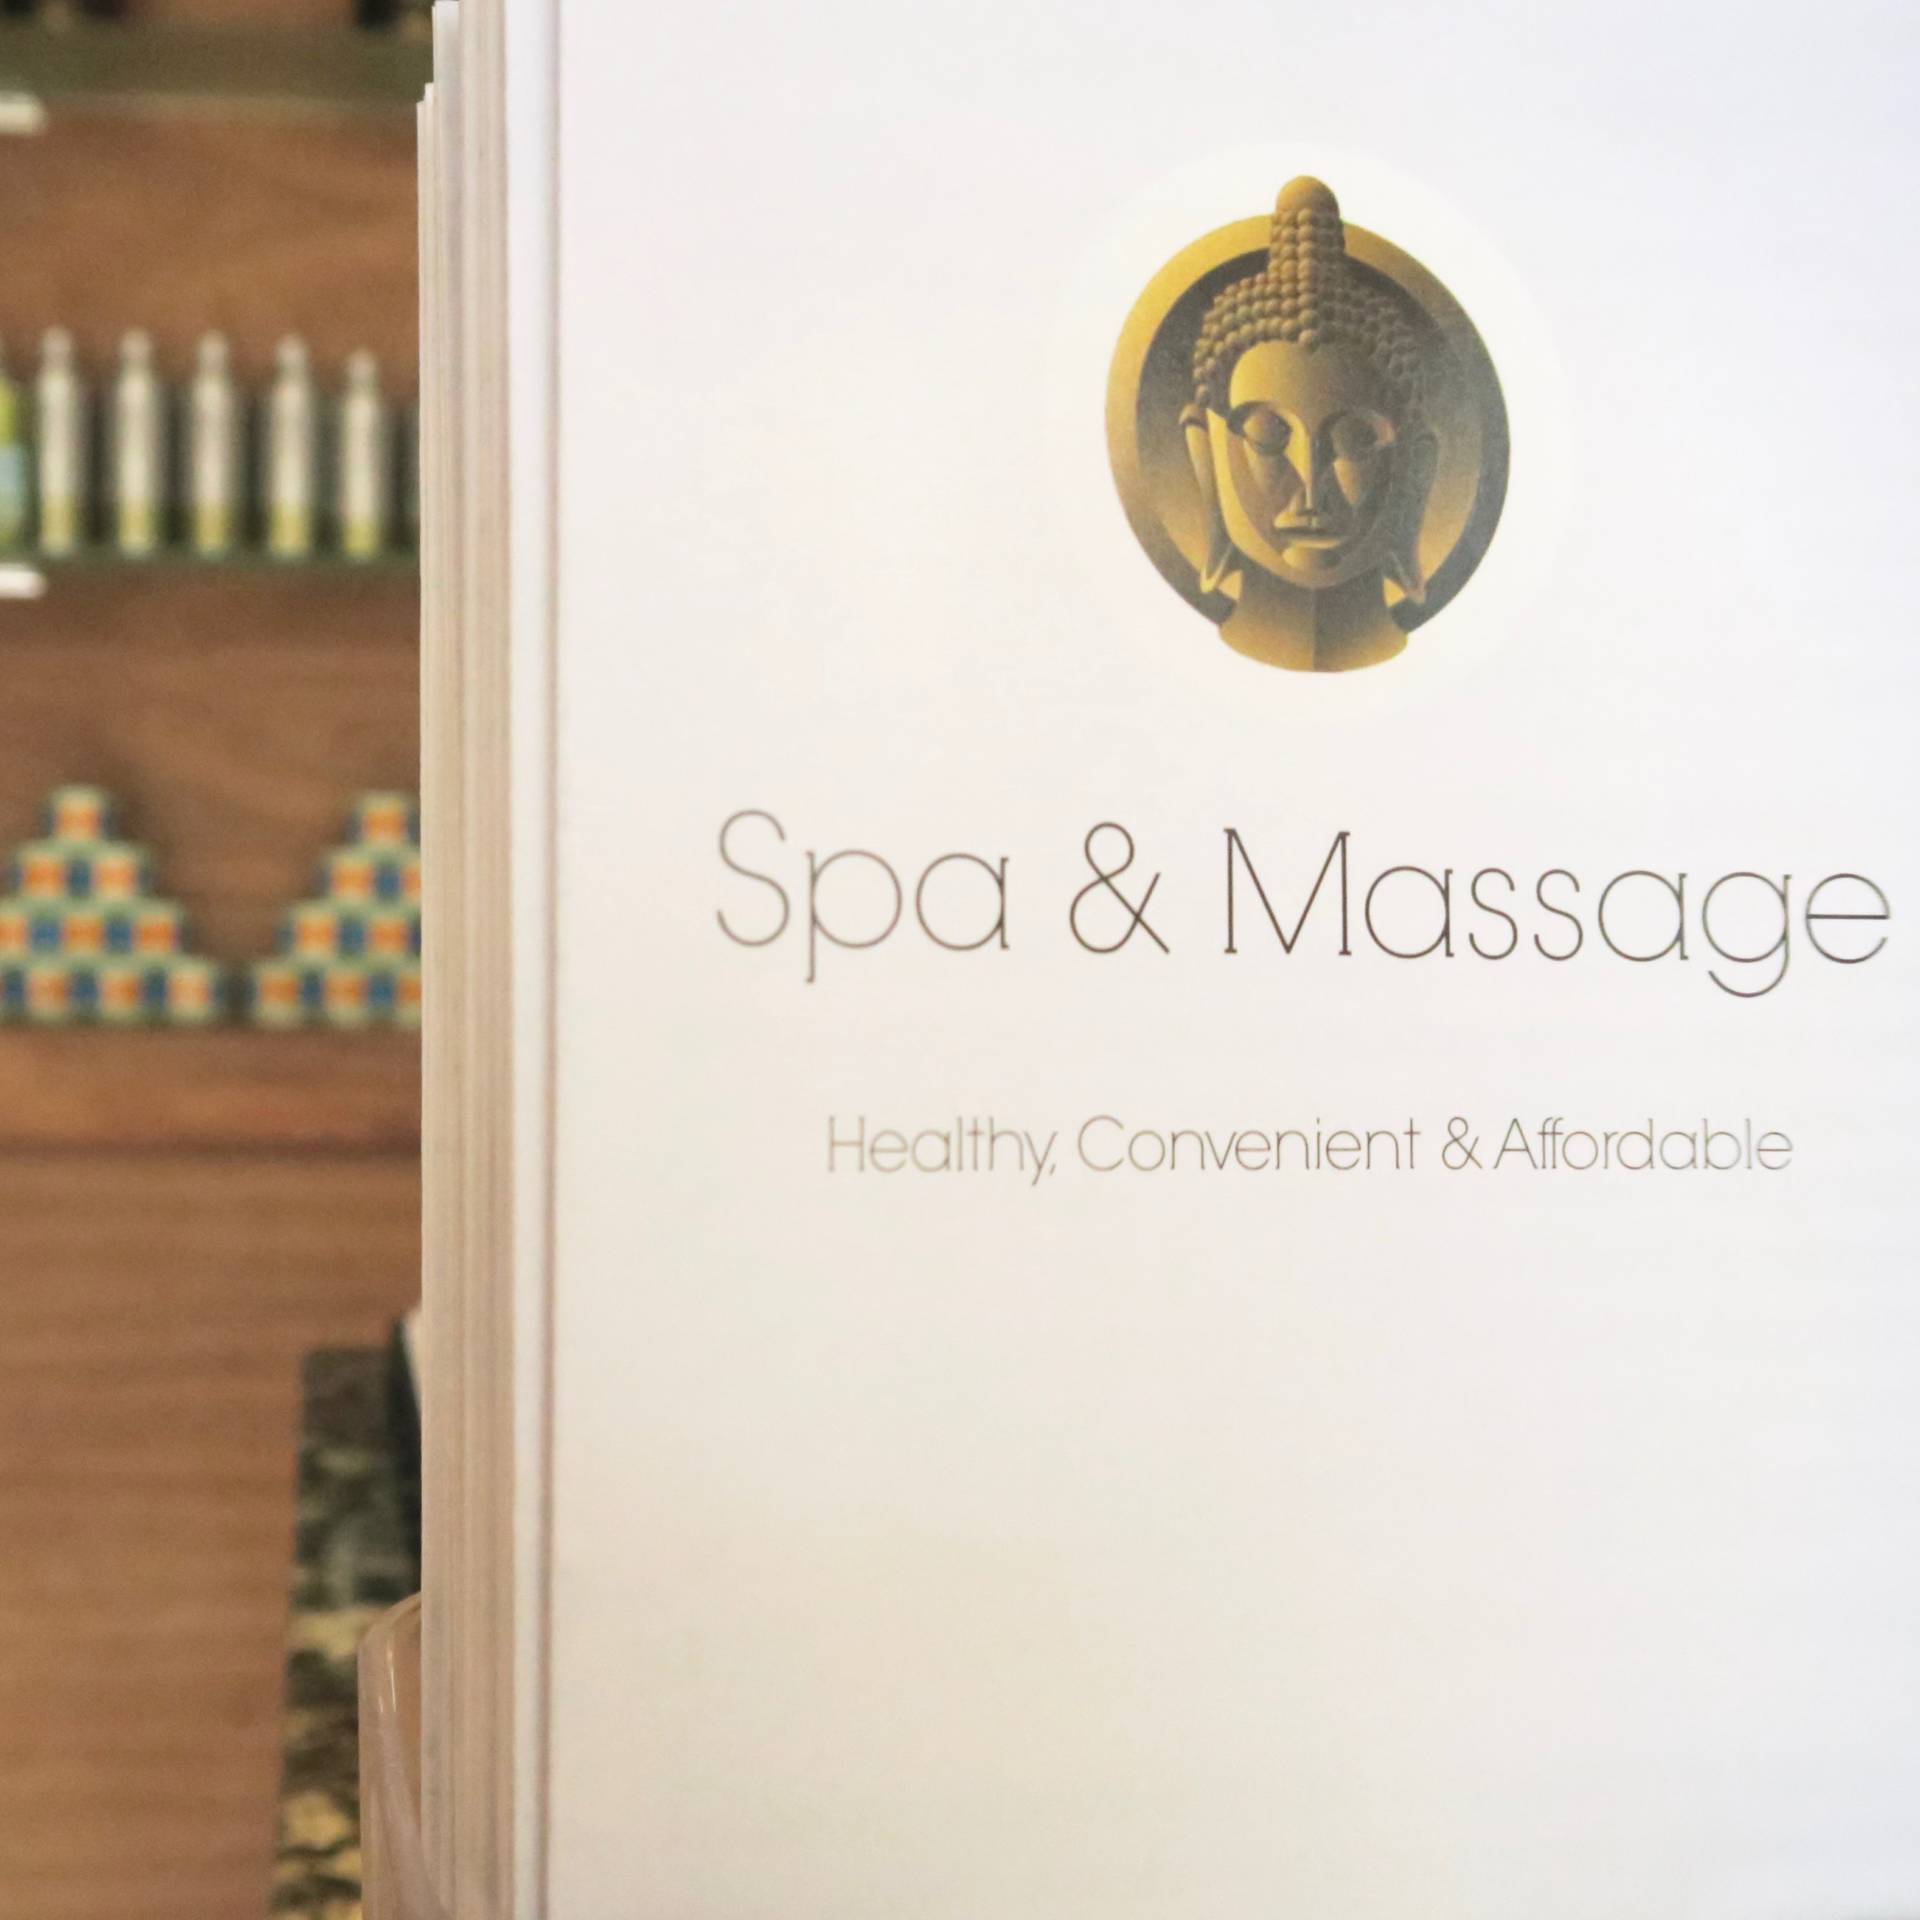 Spa and Massage Belsize Park